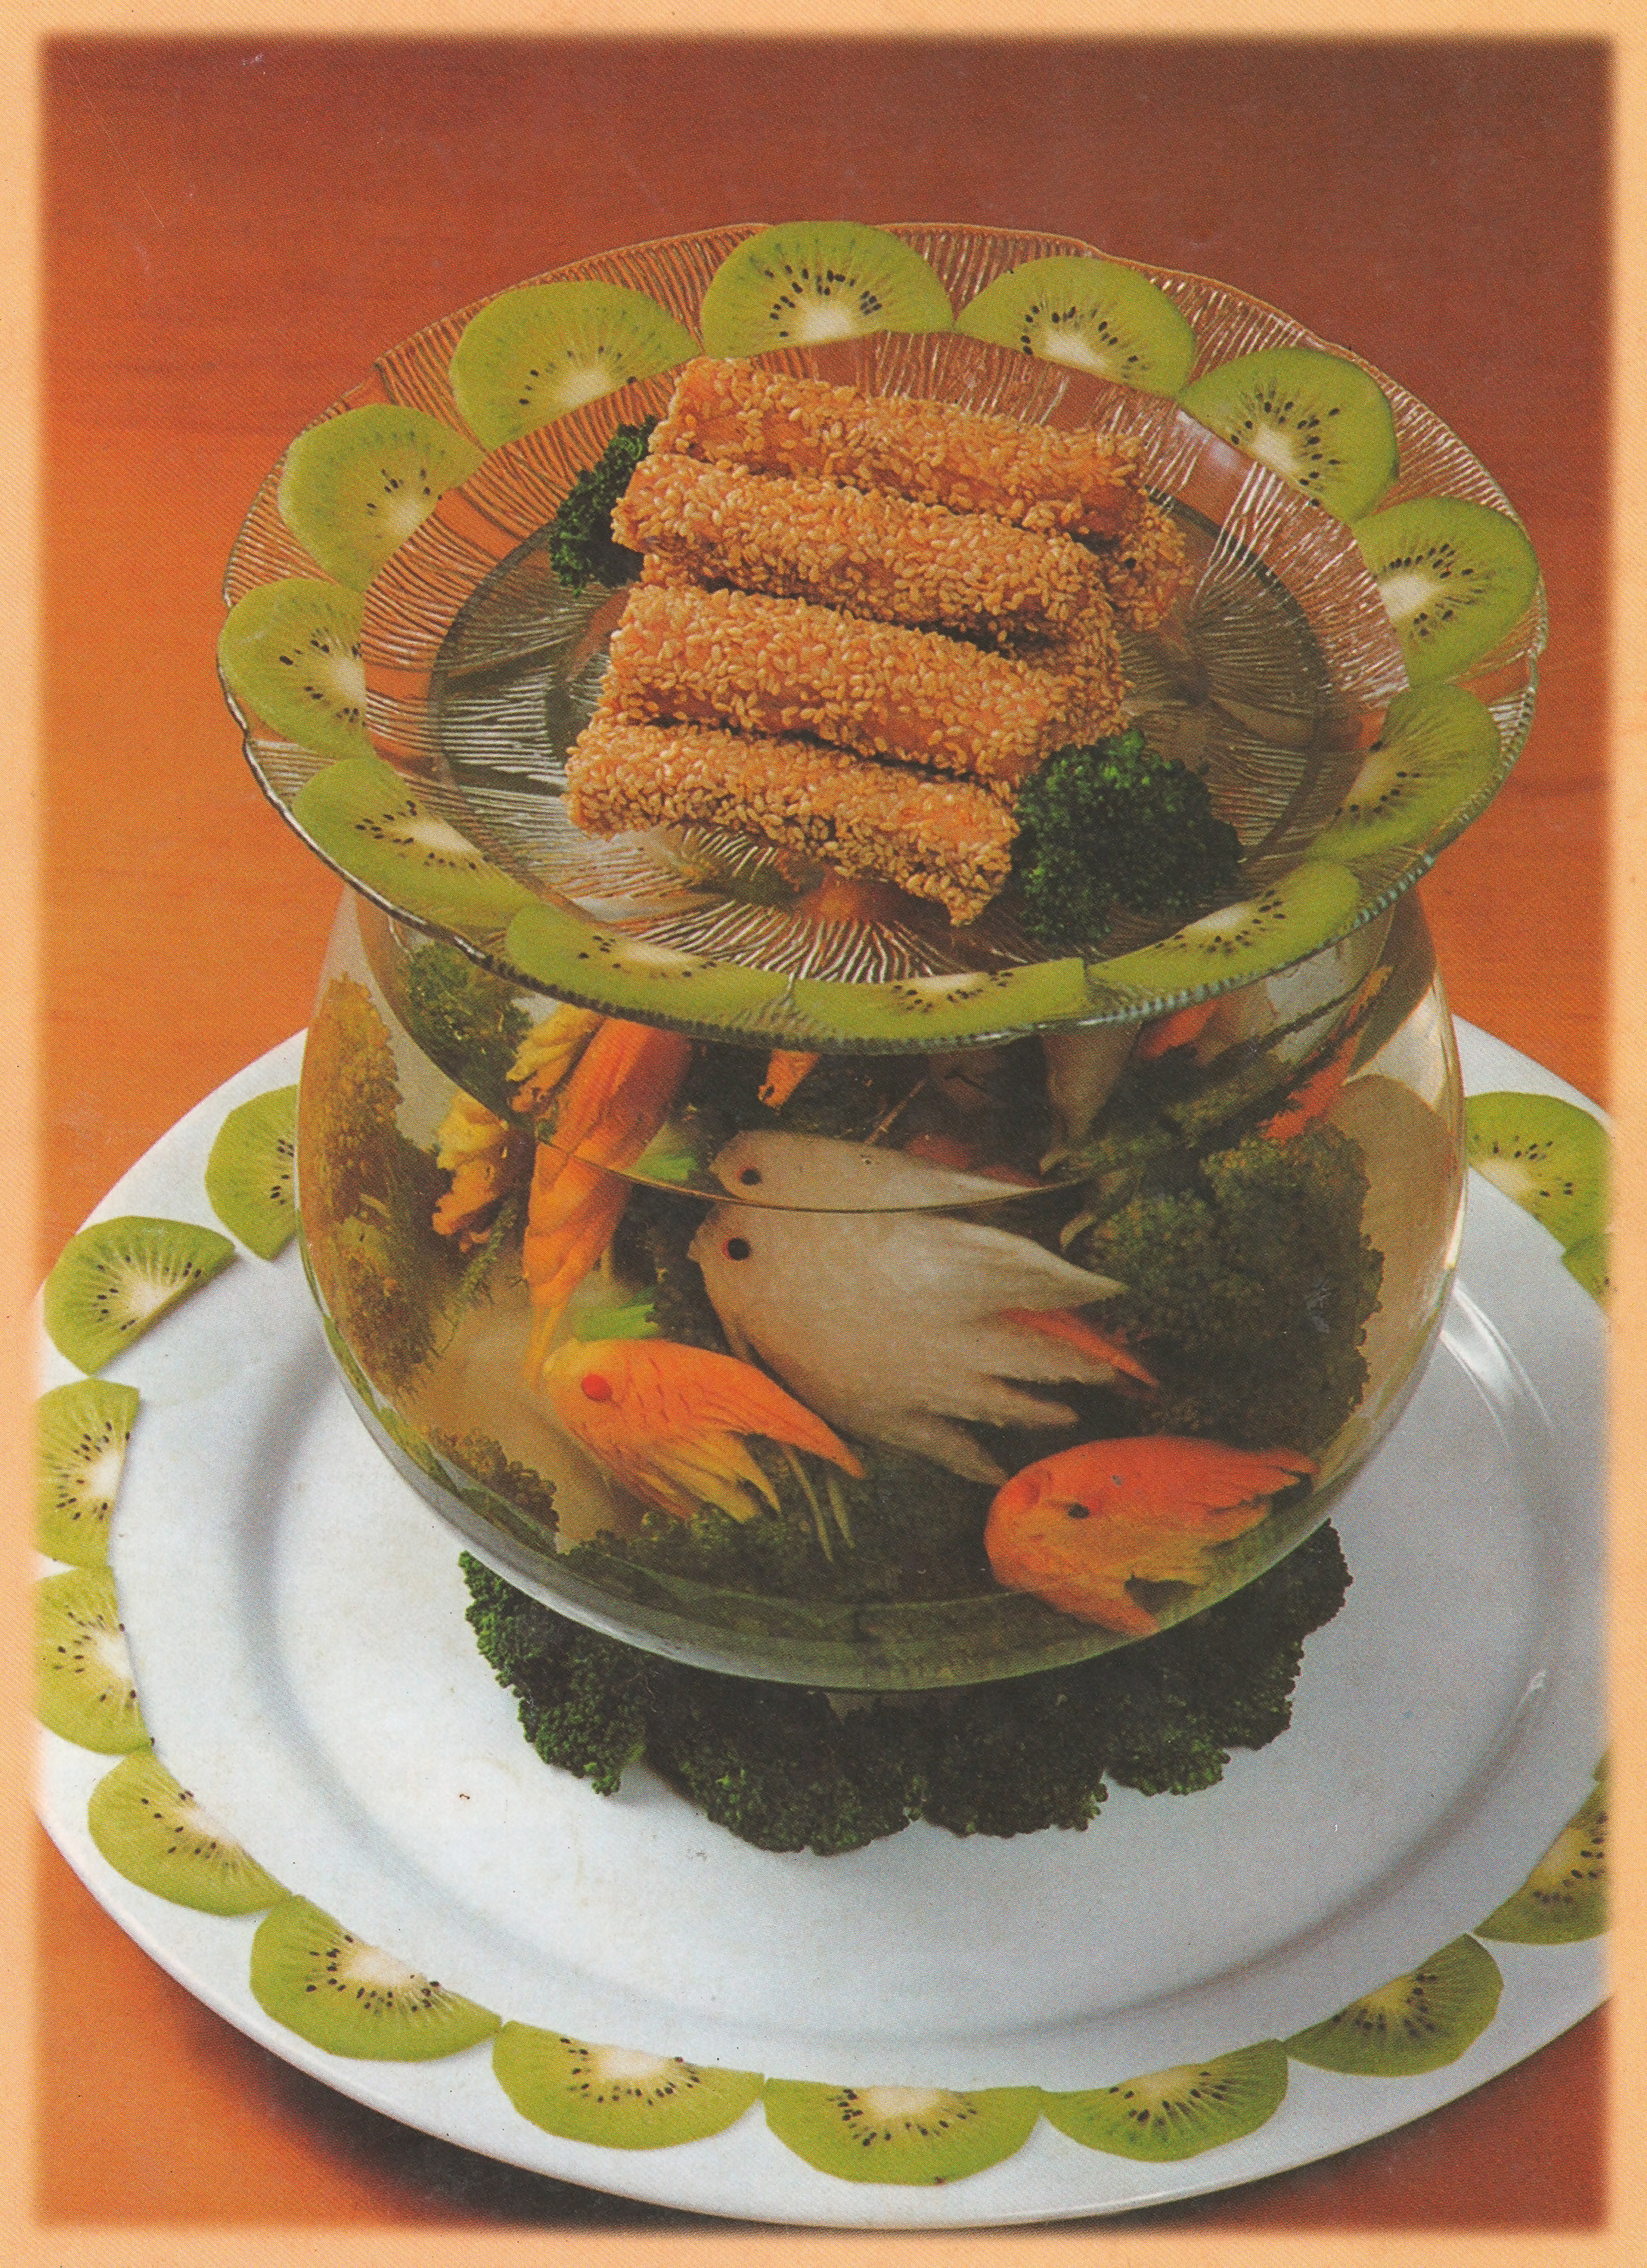 A fishbowl made of fruit and rolls